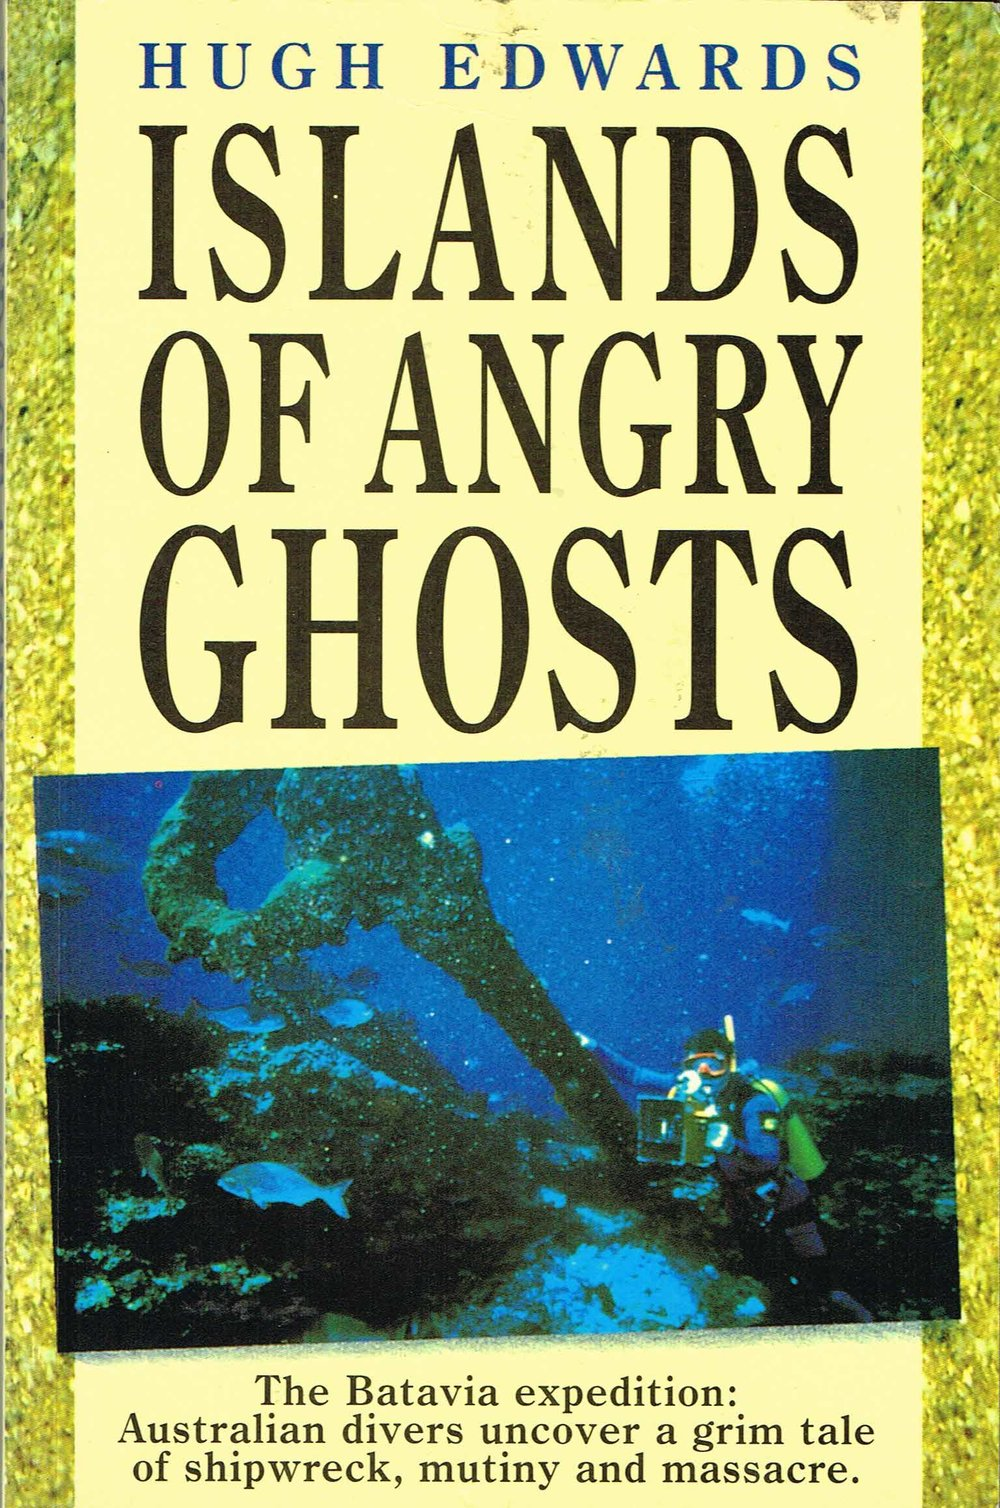 Islands of angry ghosts : The Betavia expedition: Australian divers uncover a grim tale of shipwreck, mutiny and massacre. Hugh Edwards